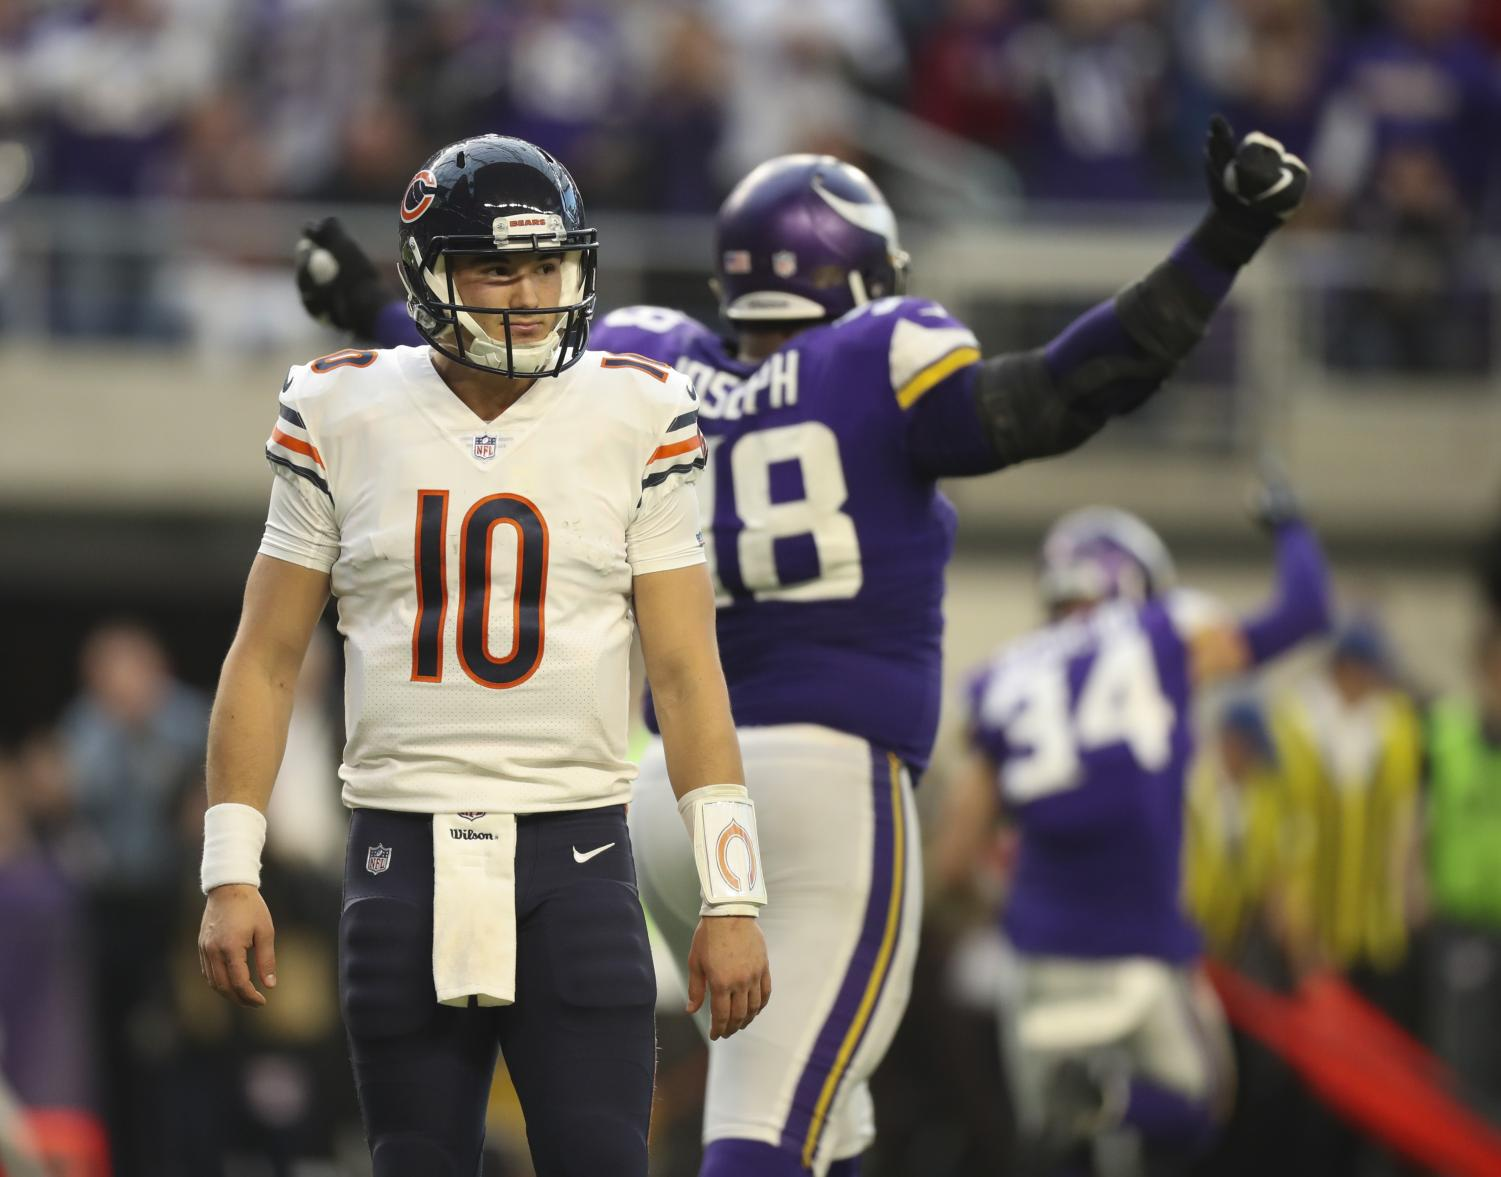 Quarterback Mitch Trubisky of the Chicago Bears competes in a game against the Minnesota Vikings in 2017. Trubisky is a young NFL talent that, much like the Illini football team, looks for big improvement.